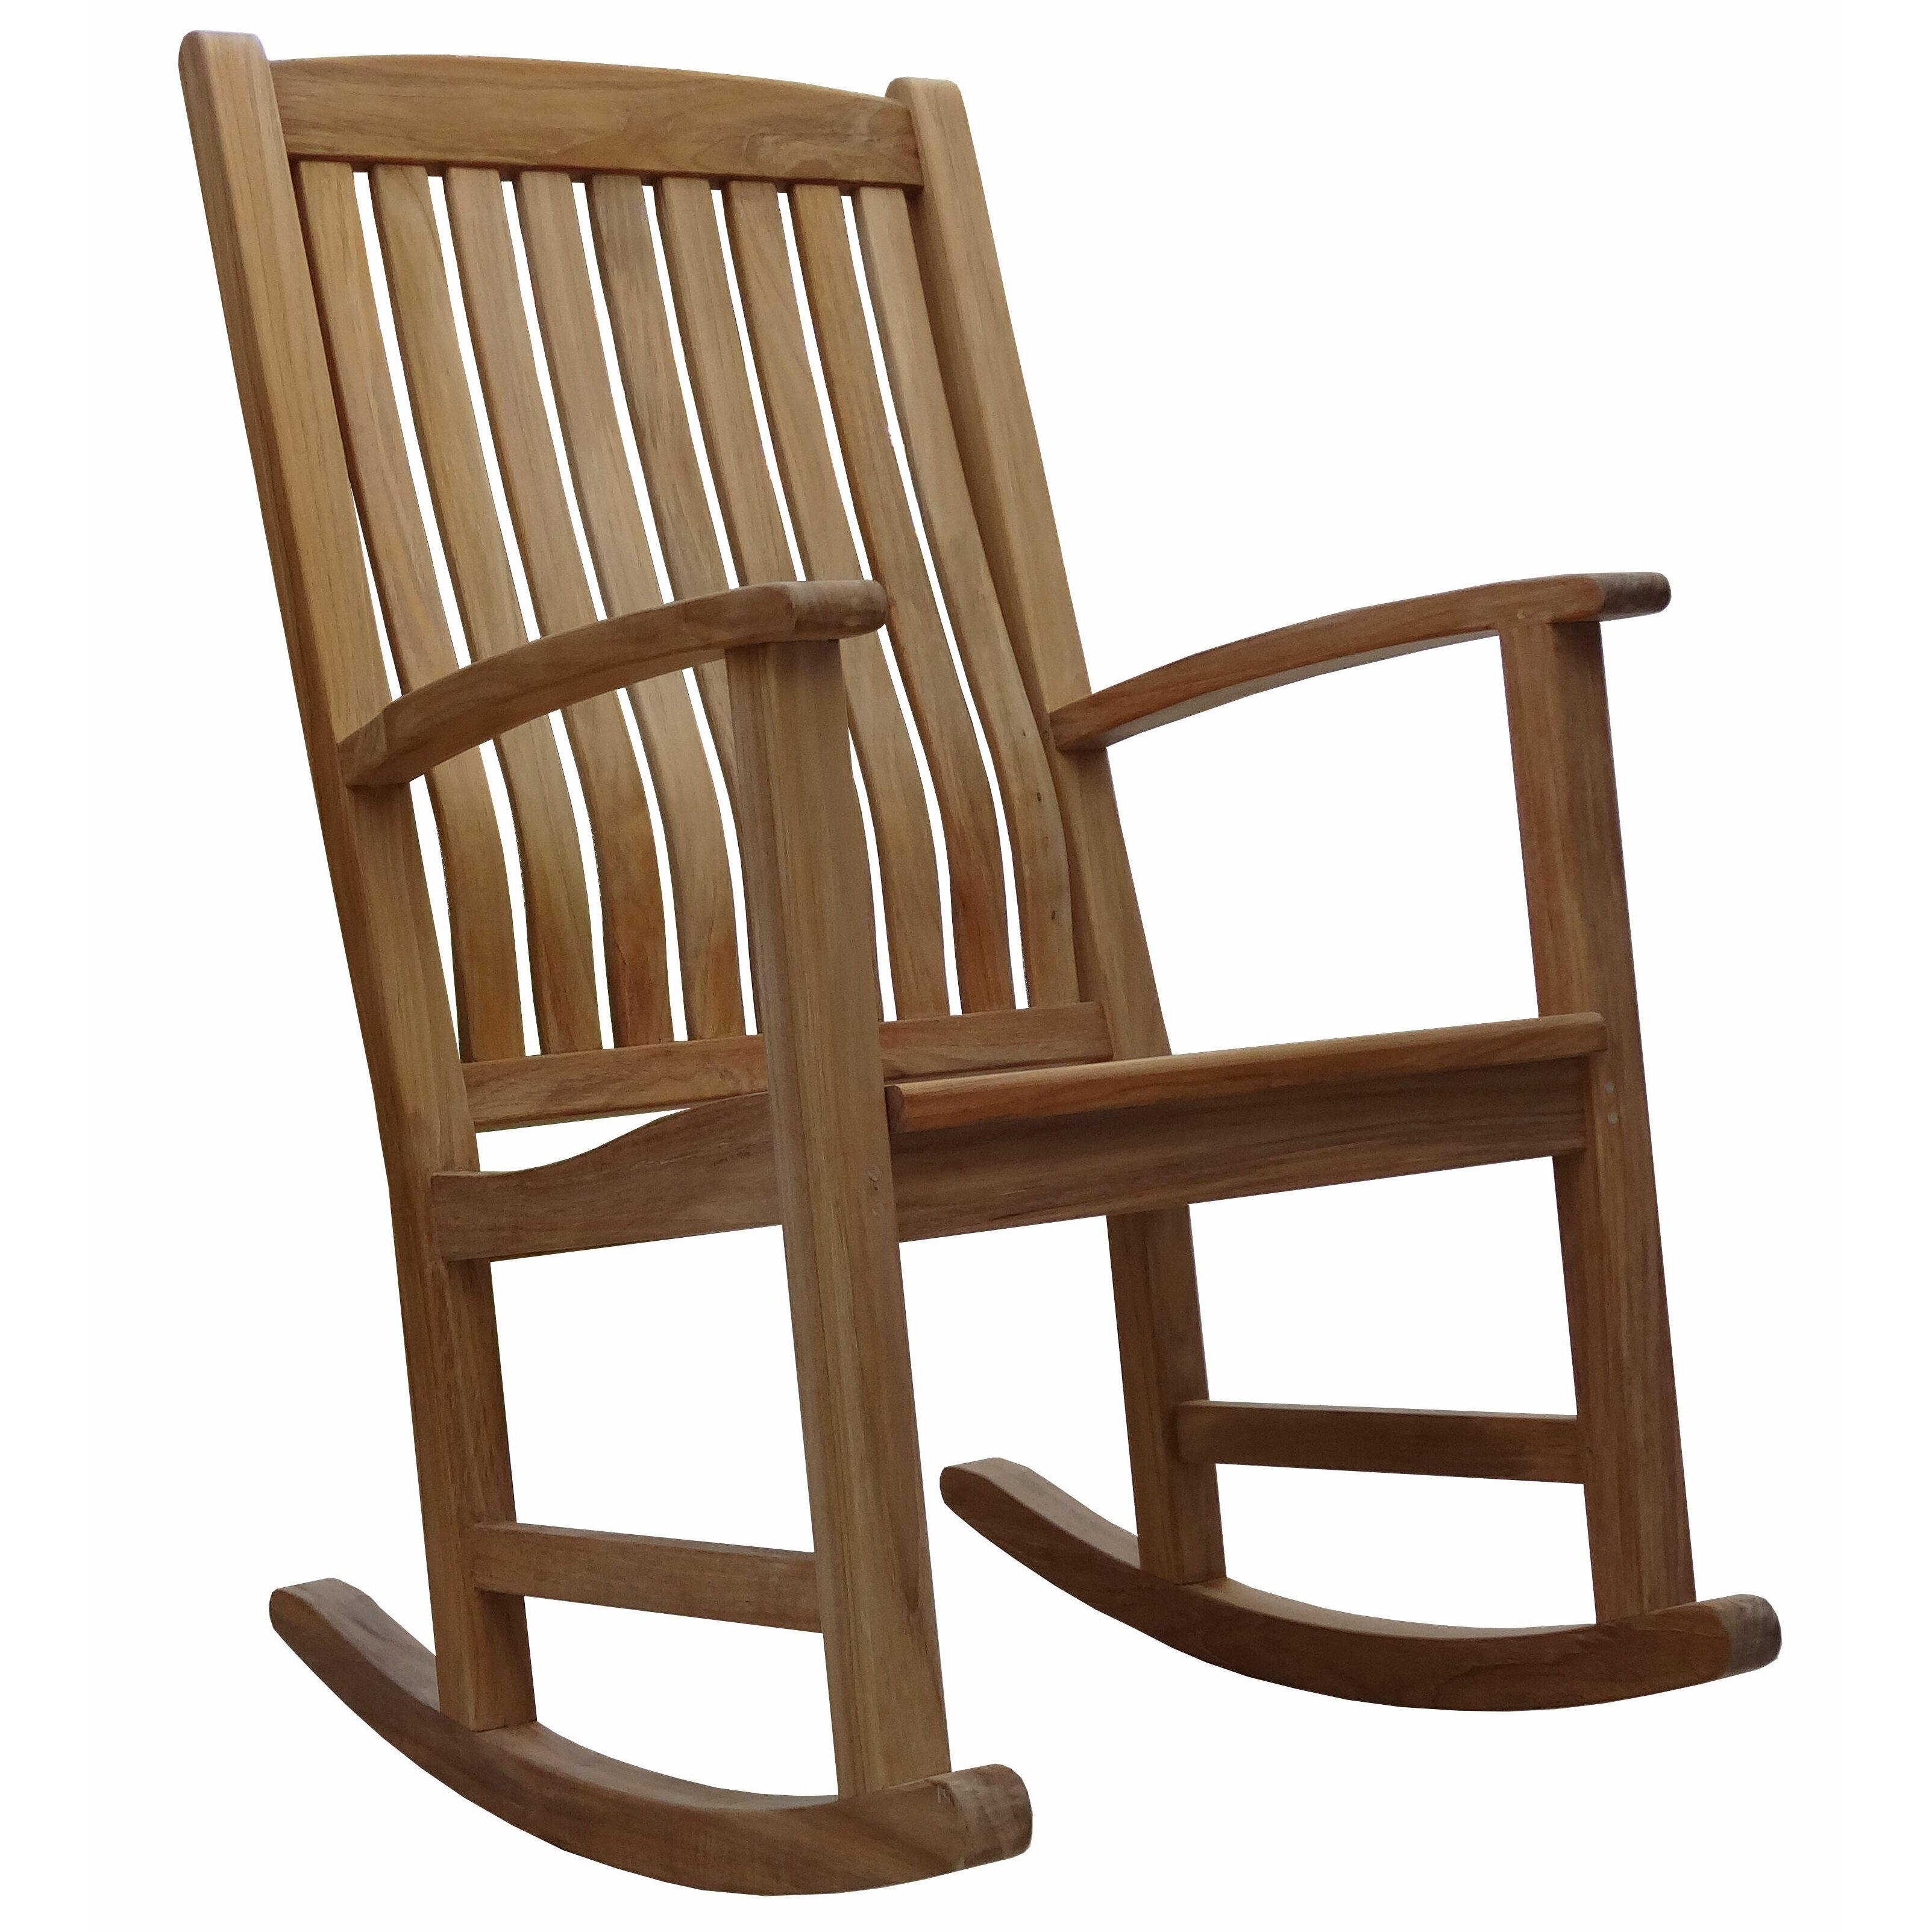 Outdoor Patio Furniture ... Wood Patio Rocking Chairs & Gliders ...